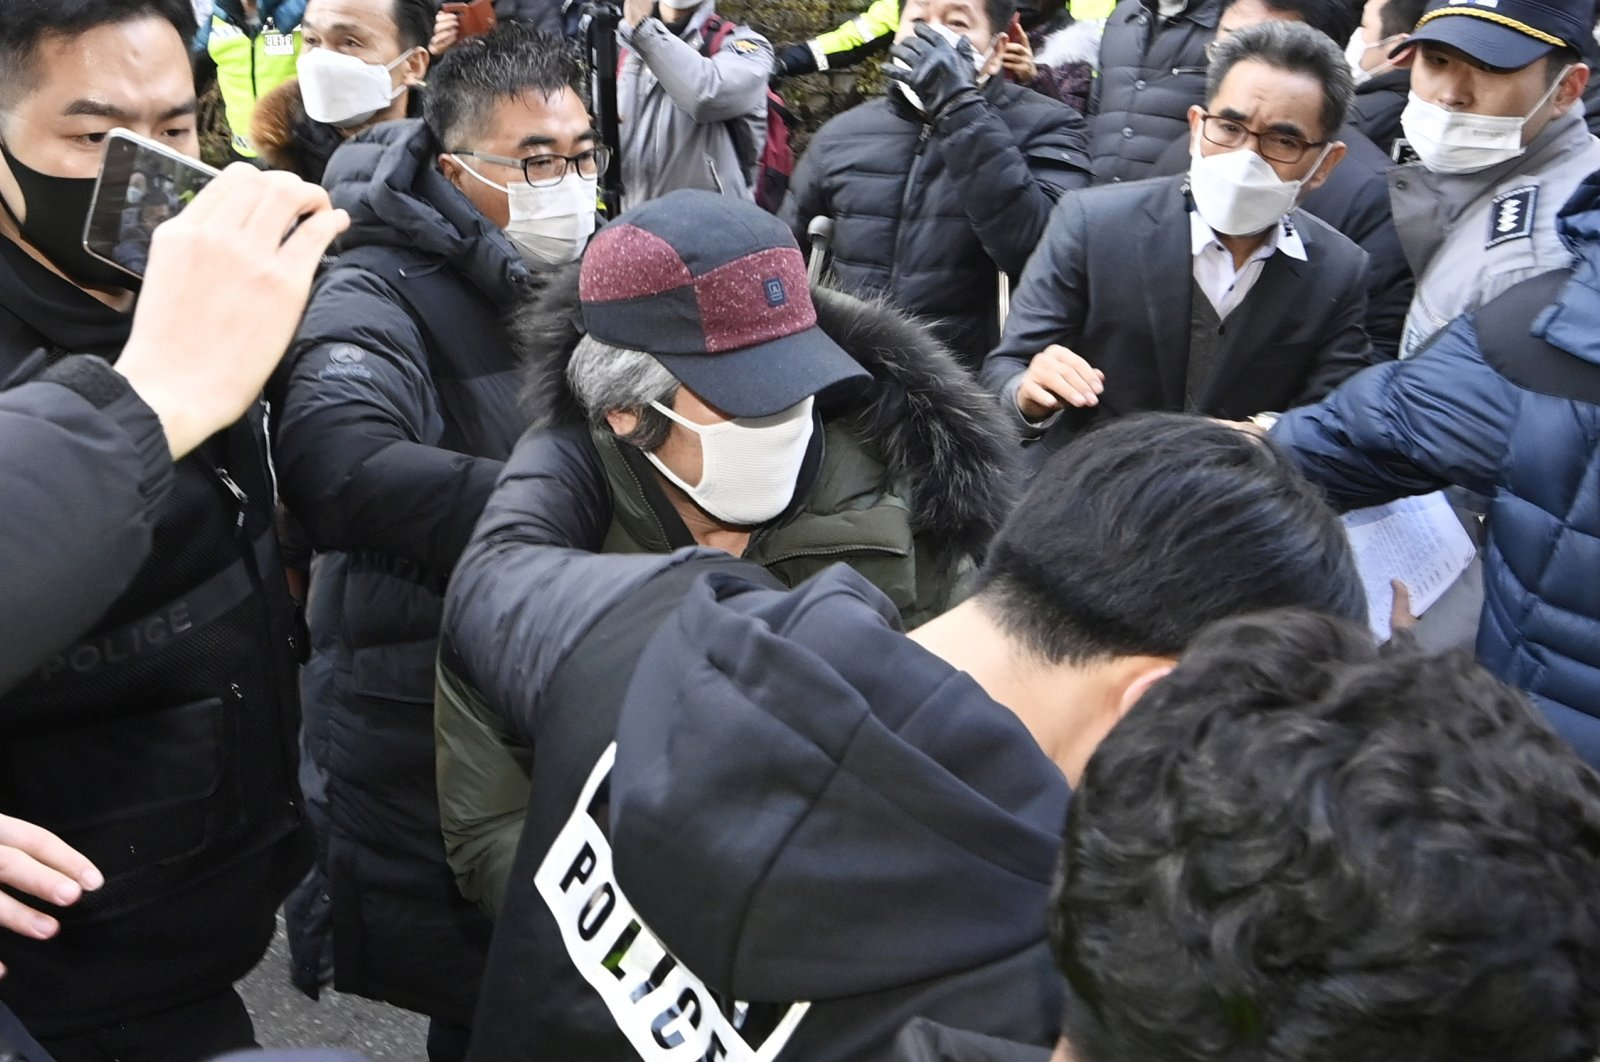 Cho Doo-soon (C), escorted by police officers, arrives home in Ansan, South Korea, Dec. 12, 2020. (AP Photo)